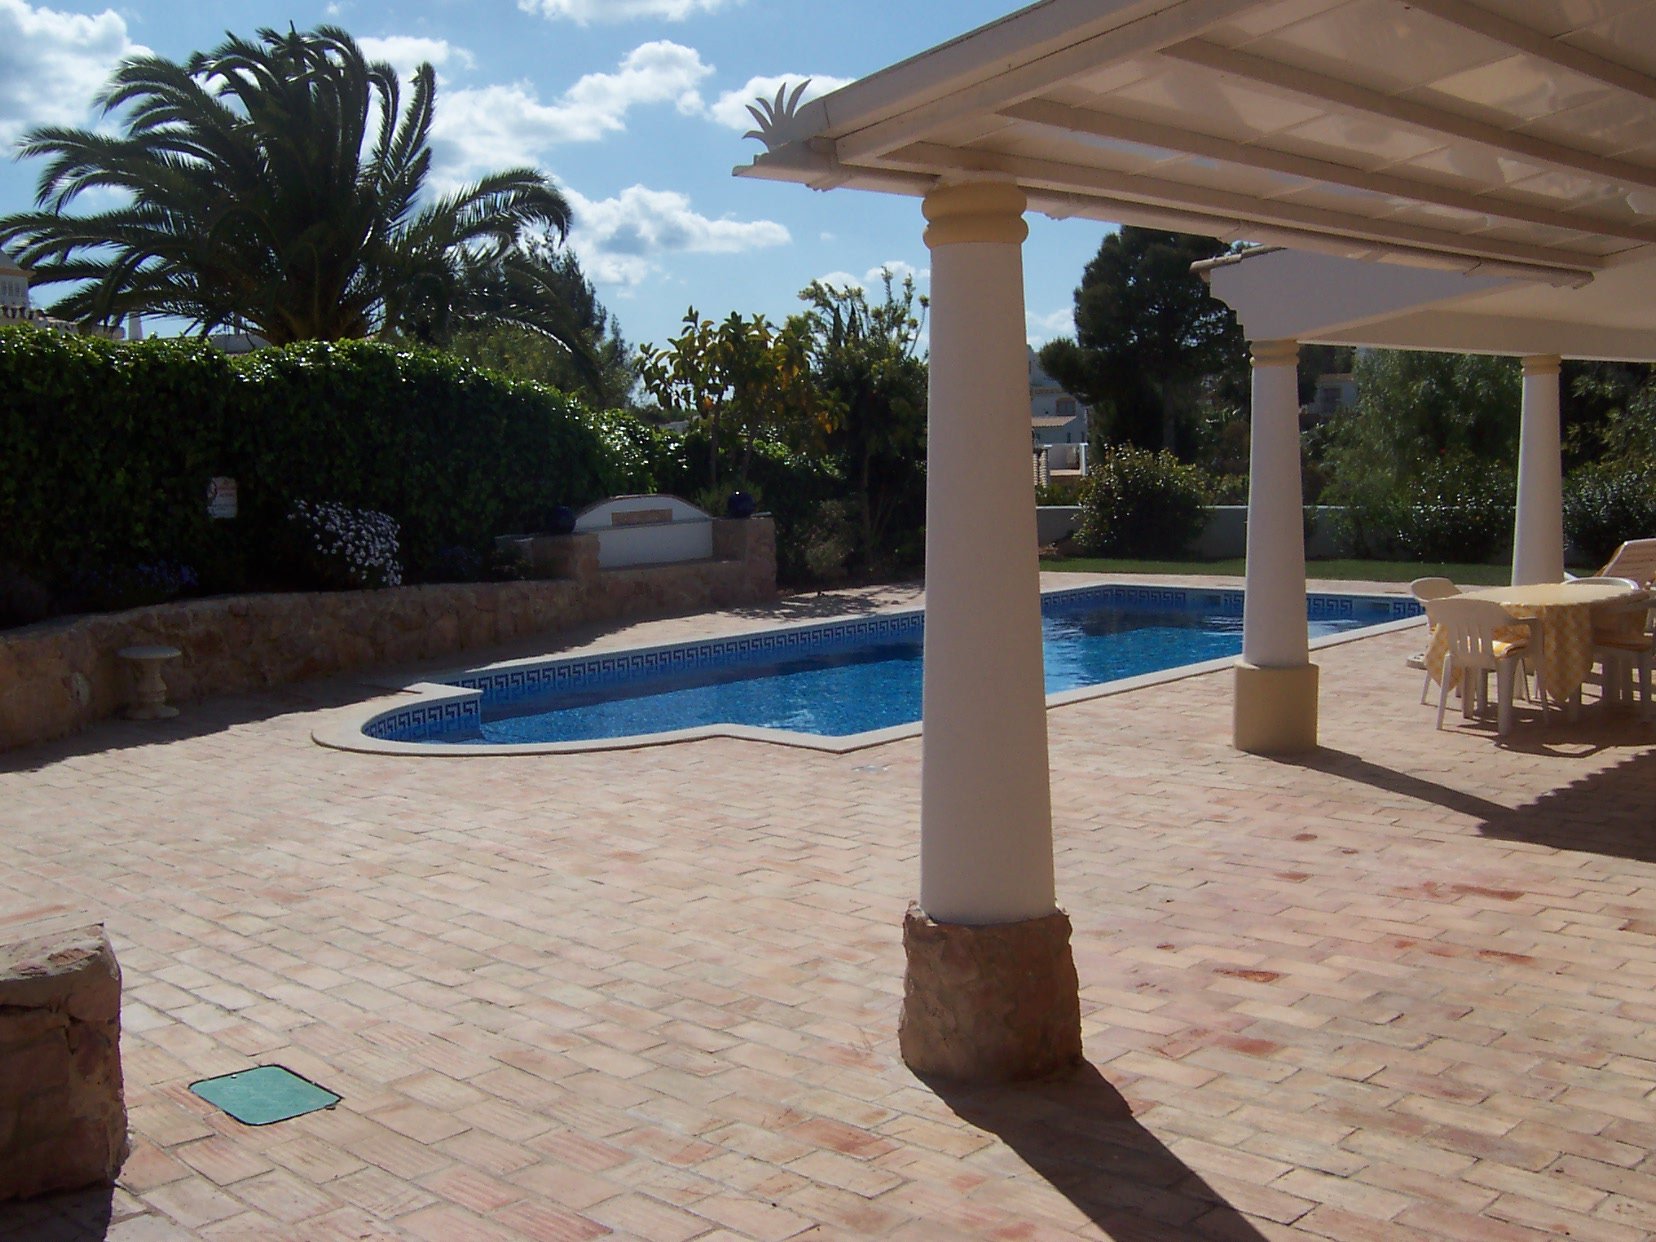 Villa Algarve Pool